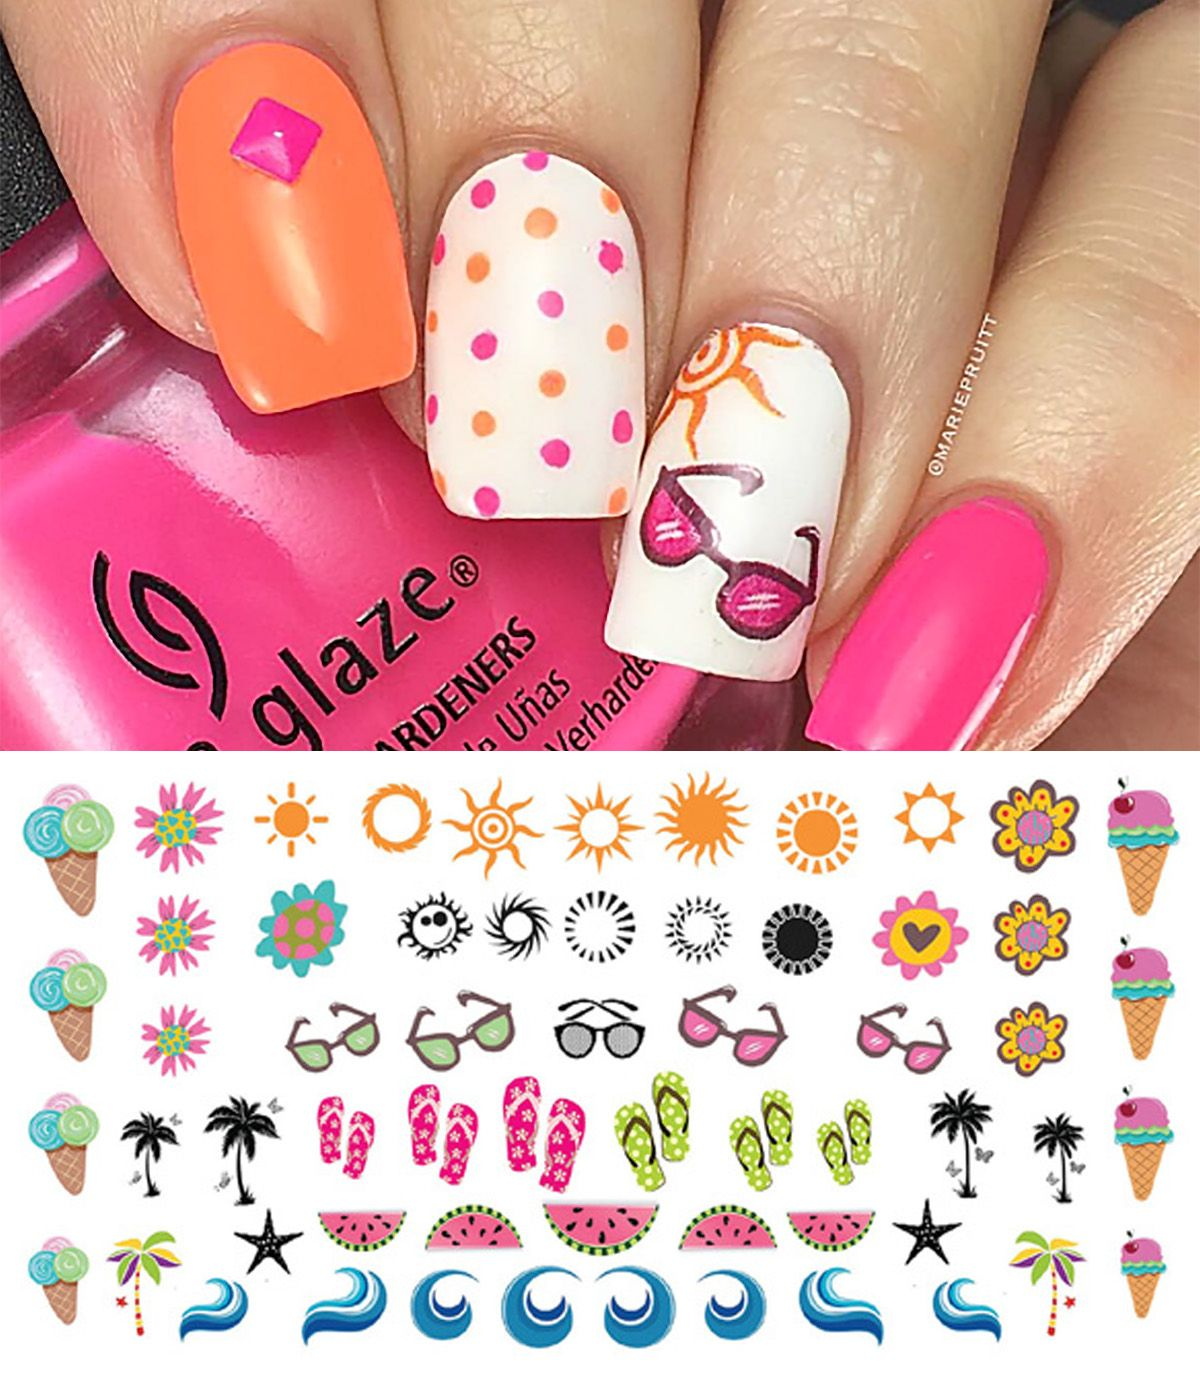 Pin by Moon Sugar Decals on Summer Nail Art Decals   Pinterest ...